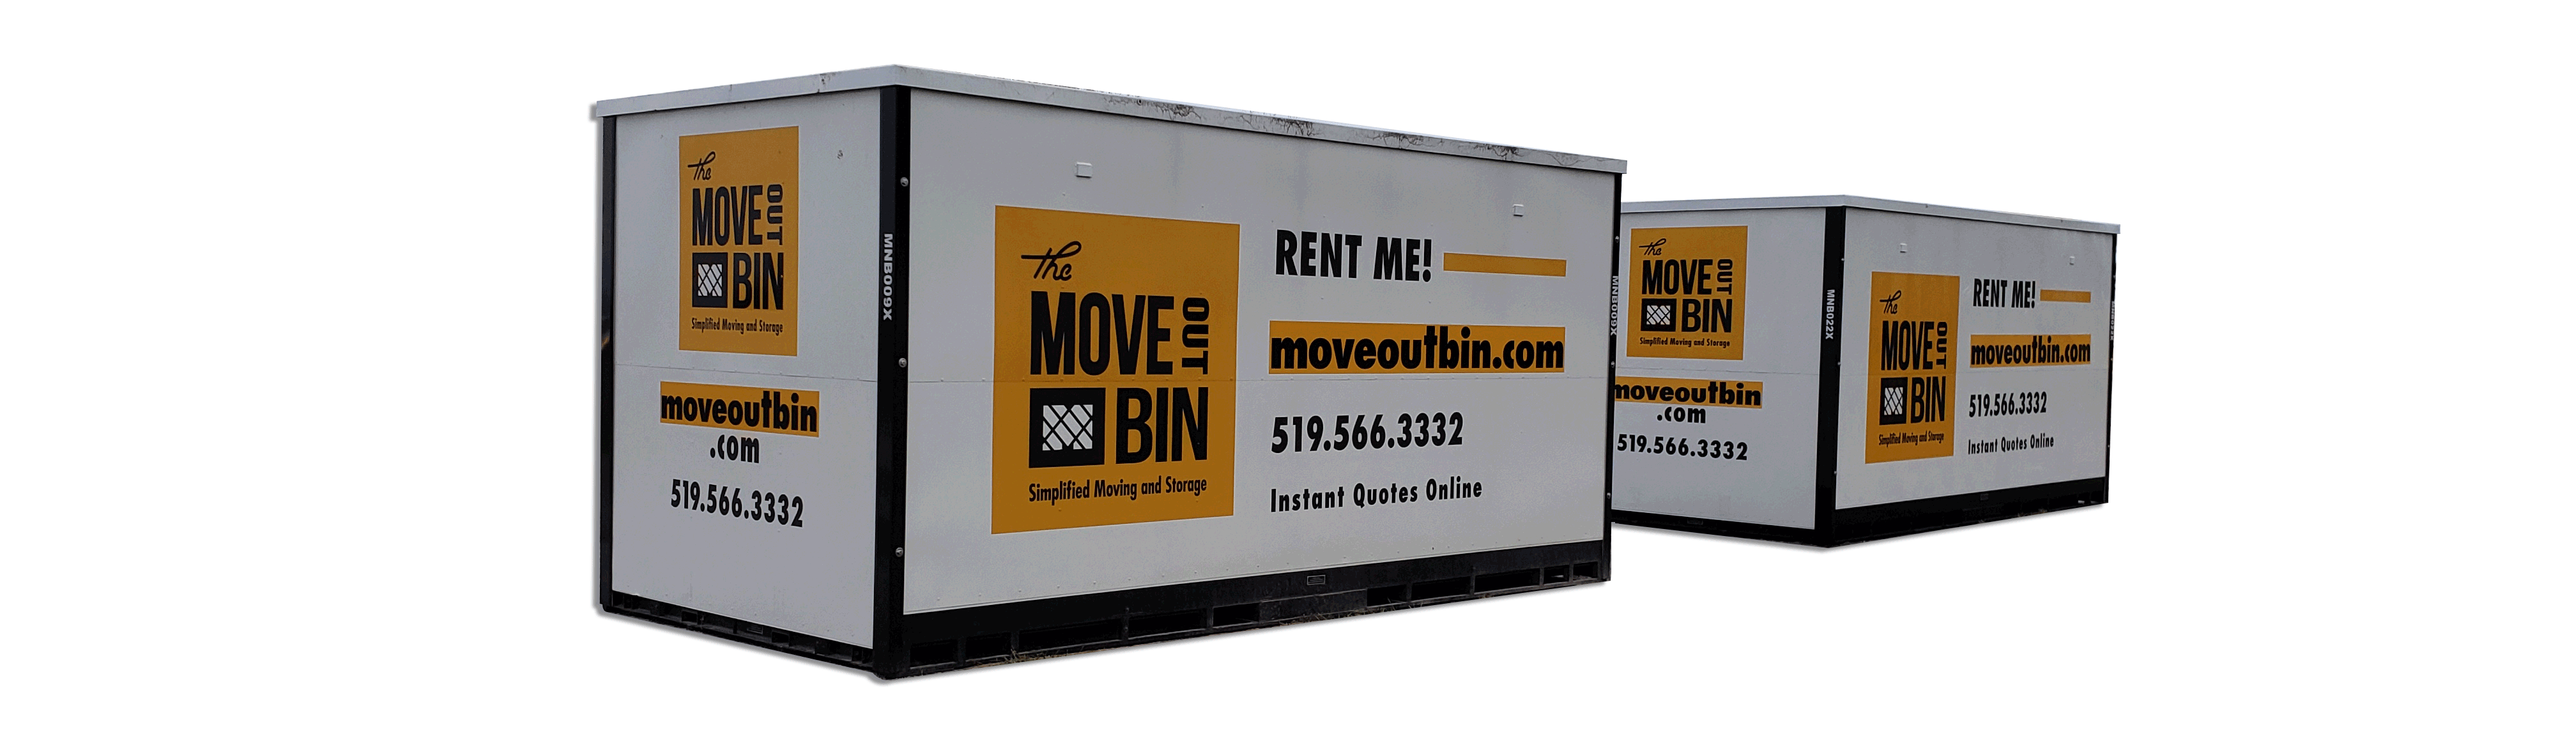 Storage bins for Windsor Essex storage solutions